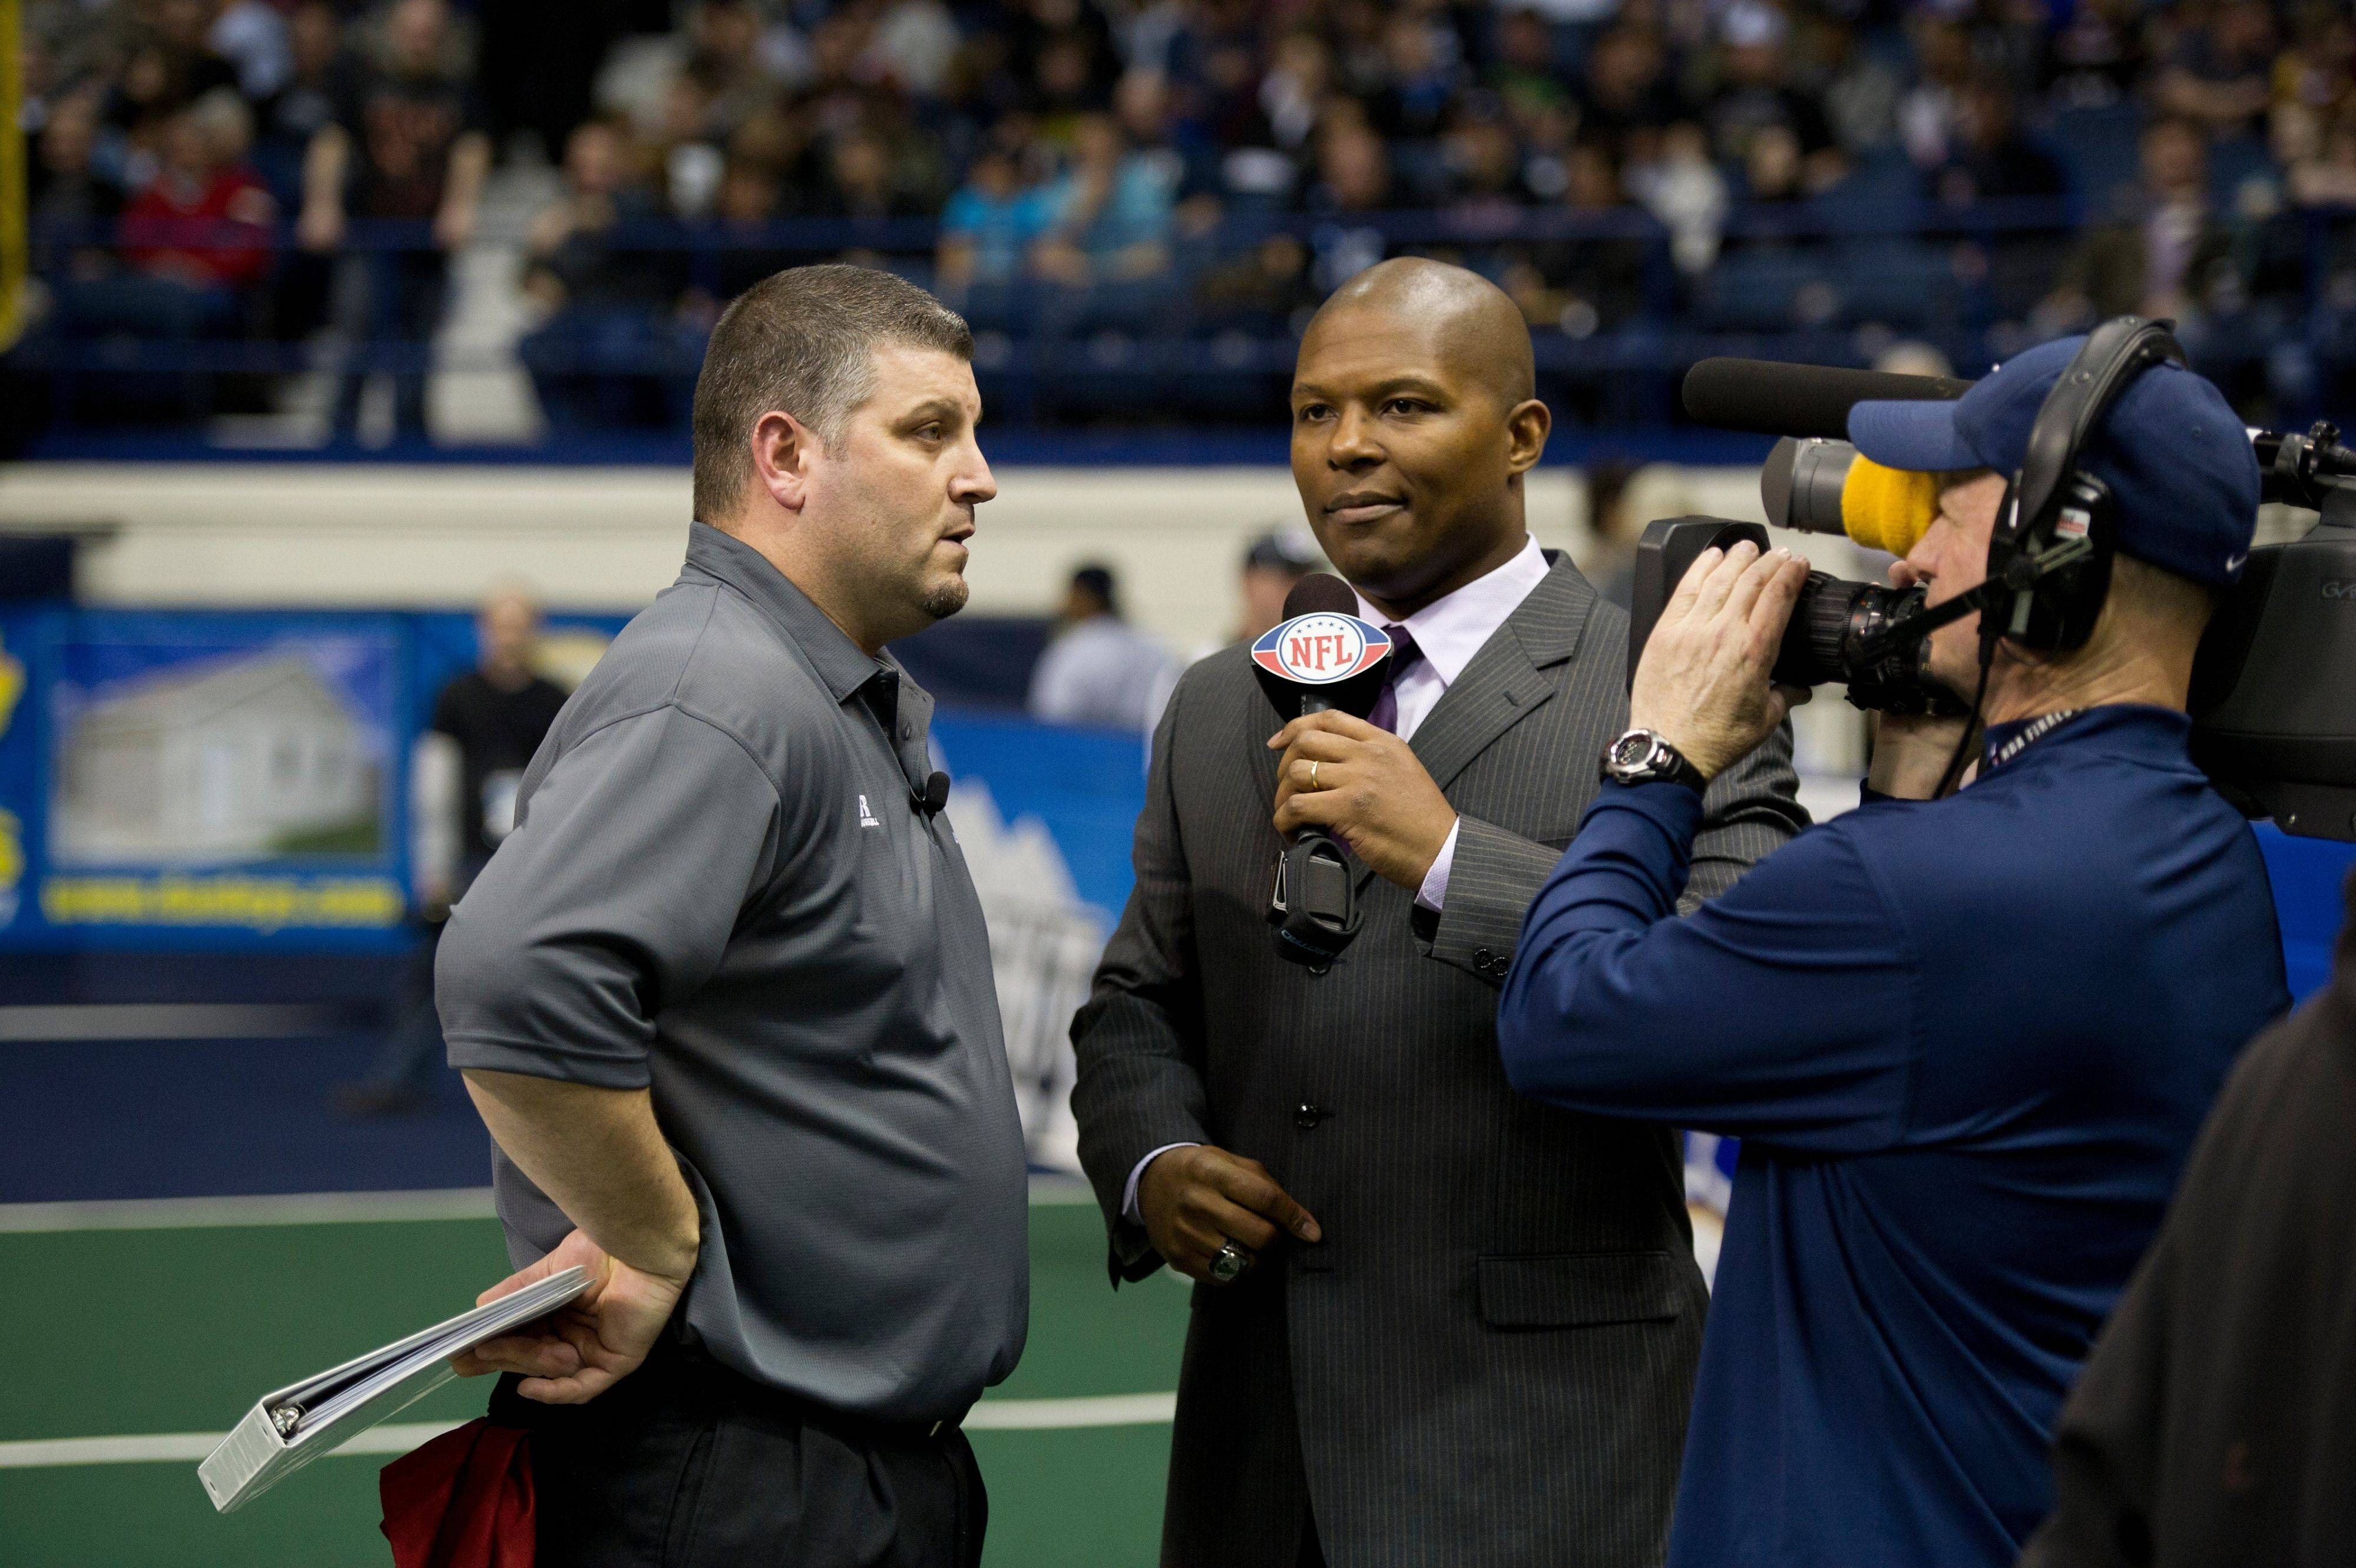 Chicago Rush head coach Bob McMillen, shown here during a sideline interview with the NFL Network crew, has his team on top of the Central Division with a 9-3 record. The Rush plays at the Spokane Shock on Saturday, and the next home game is June 26 against the Iowa Barnstormers.